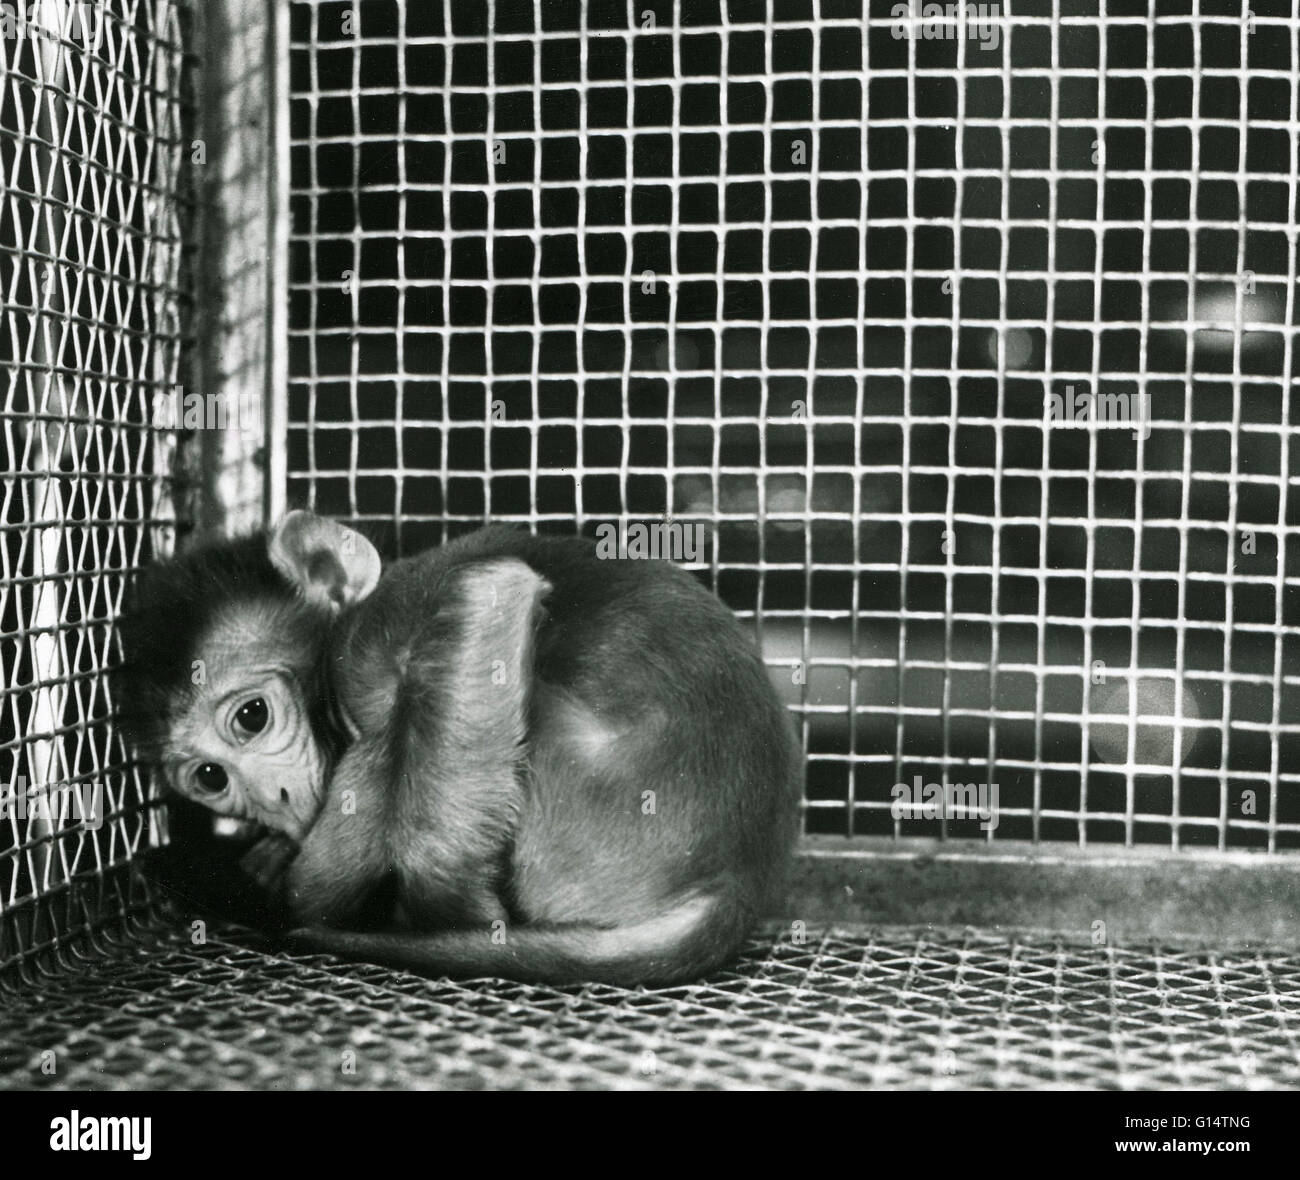 An infant Rhesus monkey (Macaca mulatta) in a cage during an animal experiment. Maternal deprivation experiments - Stock Image